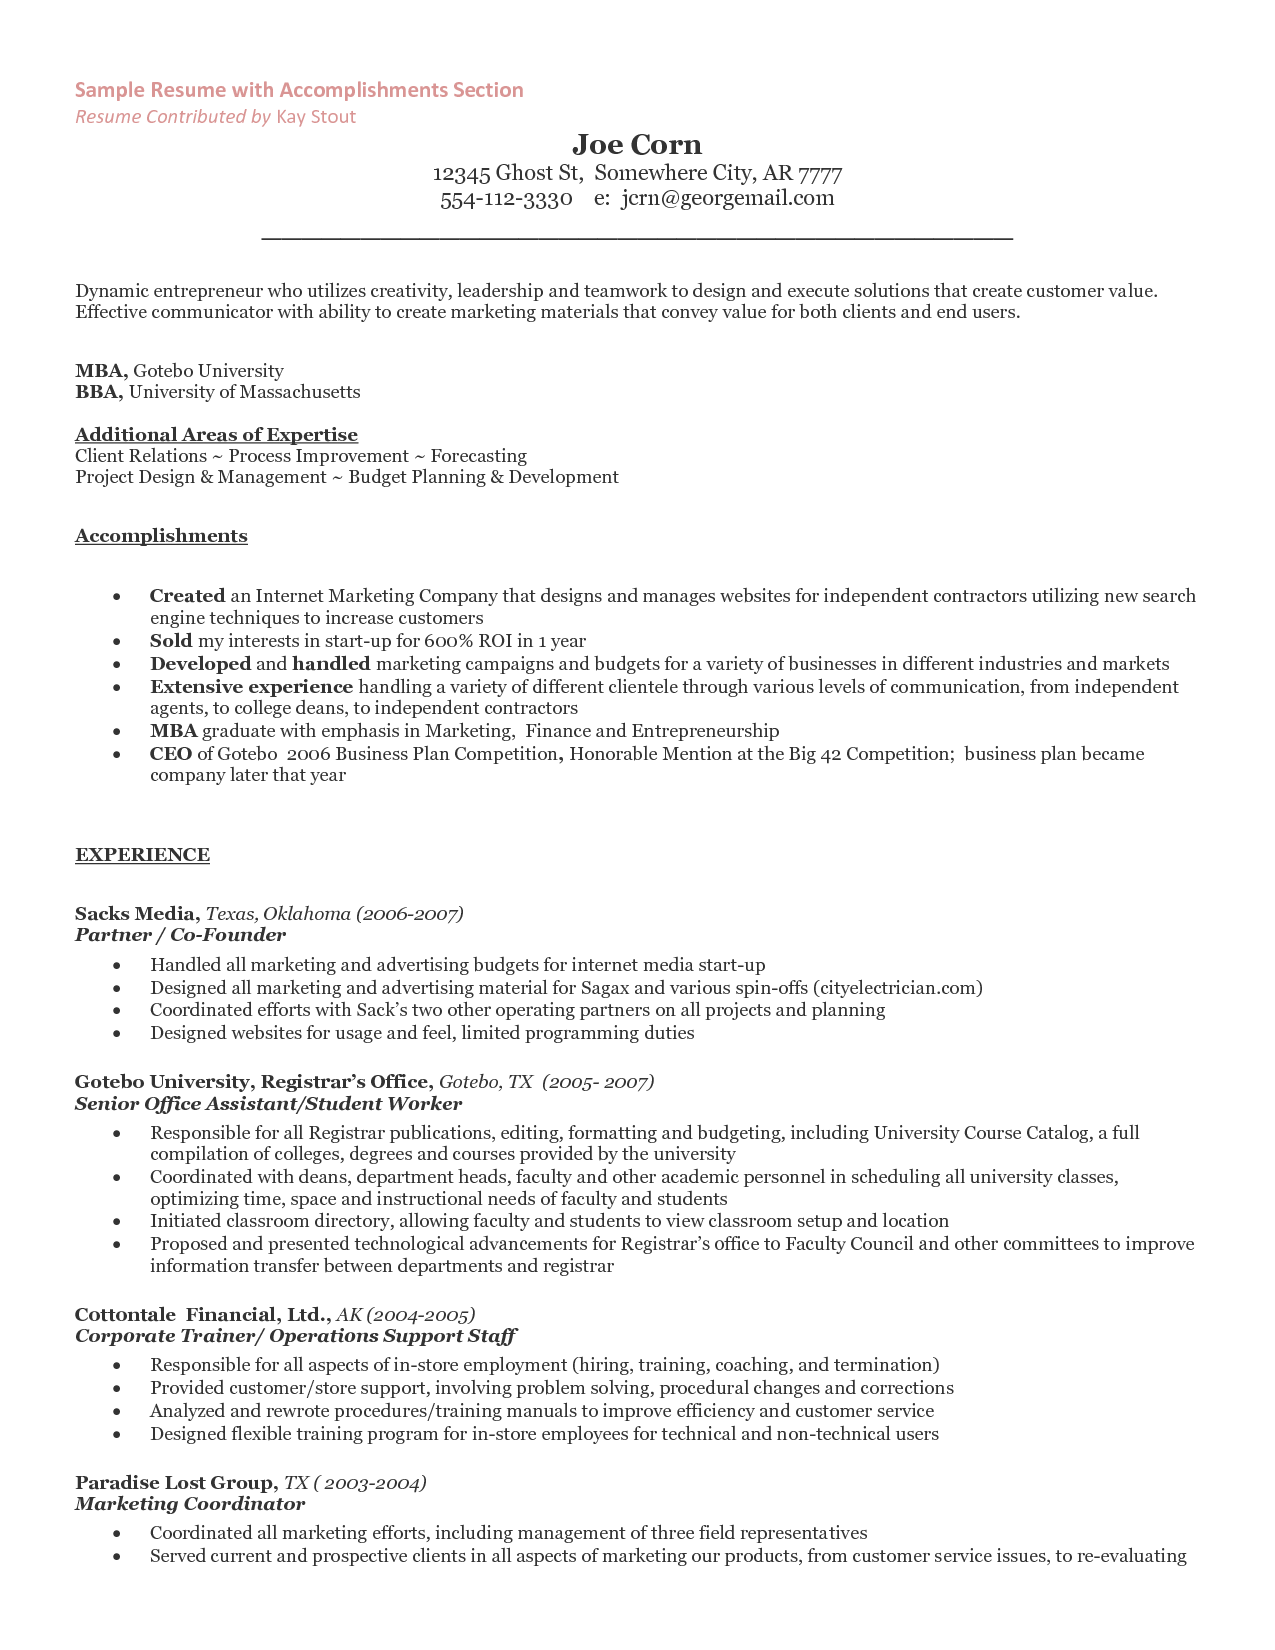 The Entrepreneur Resume and Cover Letter What Should You